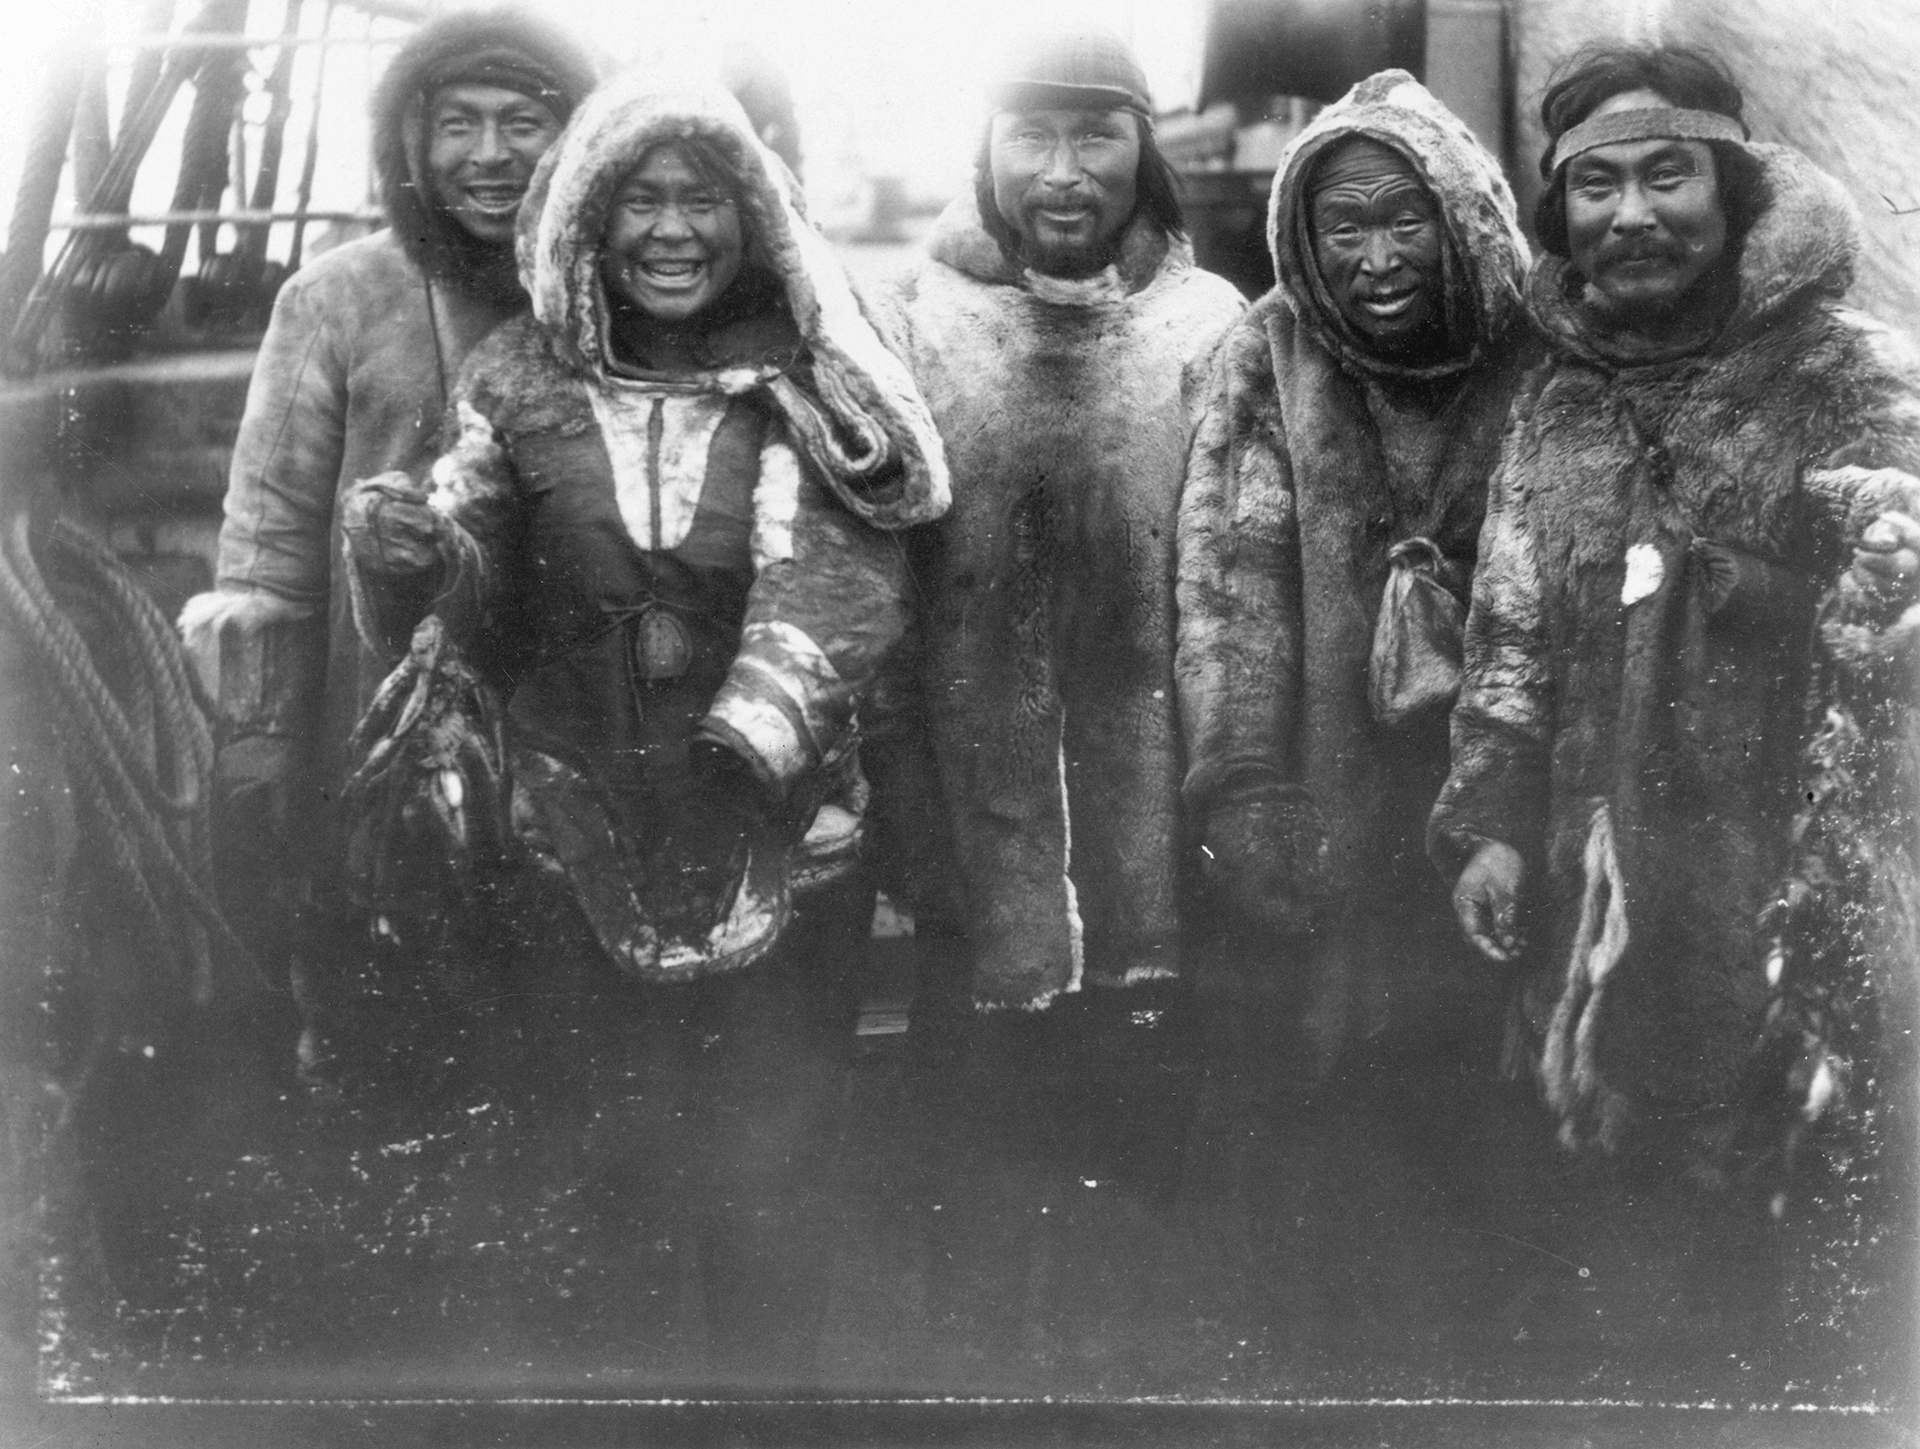 Photograph of Inuit taken at Douglas Harbor during the Wakeham expedition. Kangiqsujuaq, 1897. All the individuals are smiling and proudly wearing skin clothing.